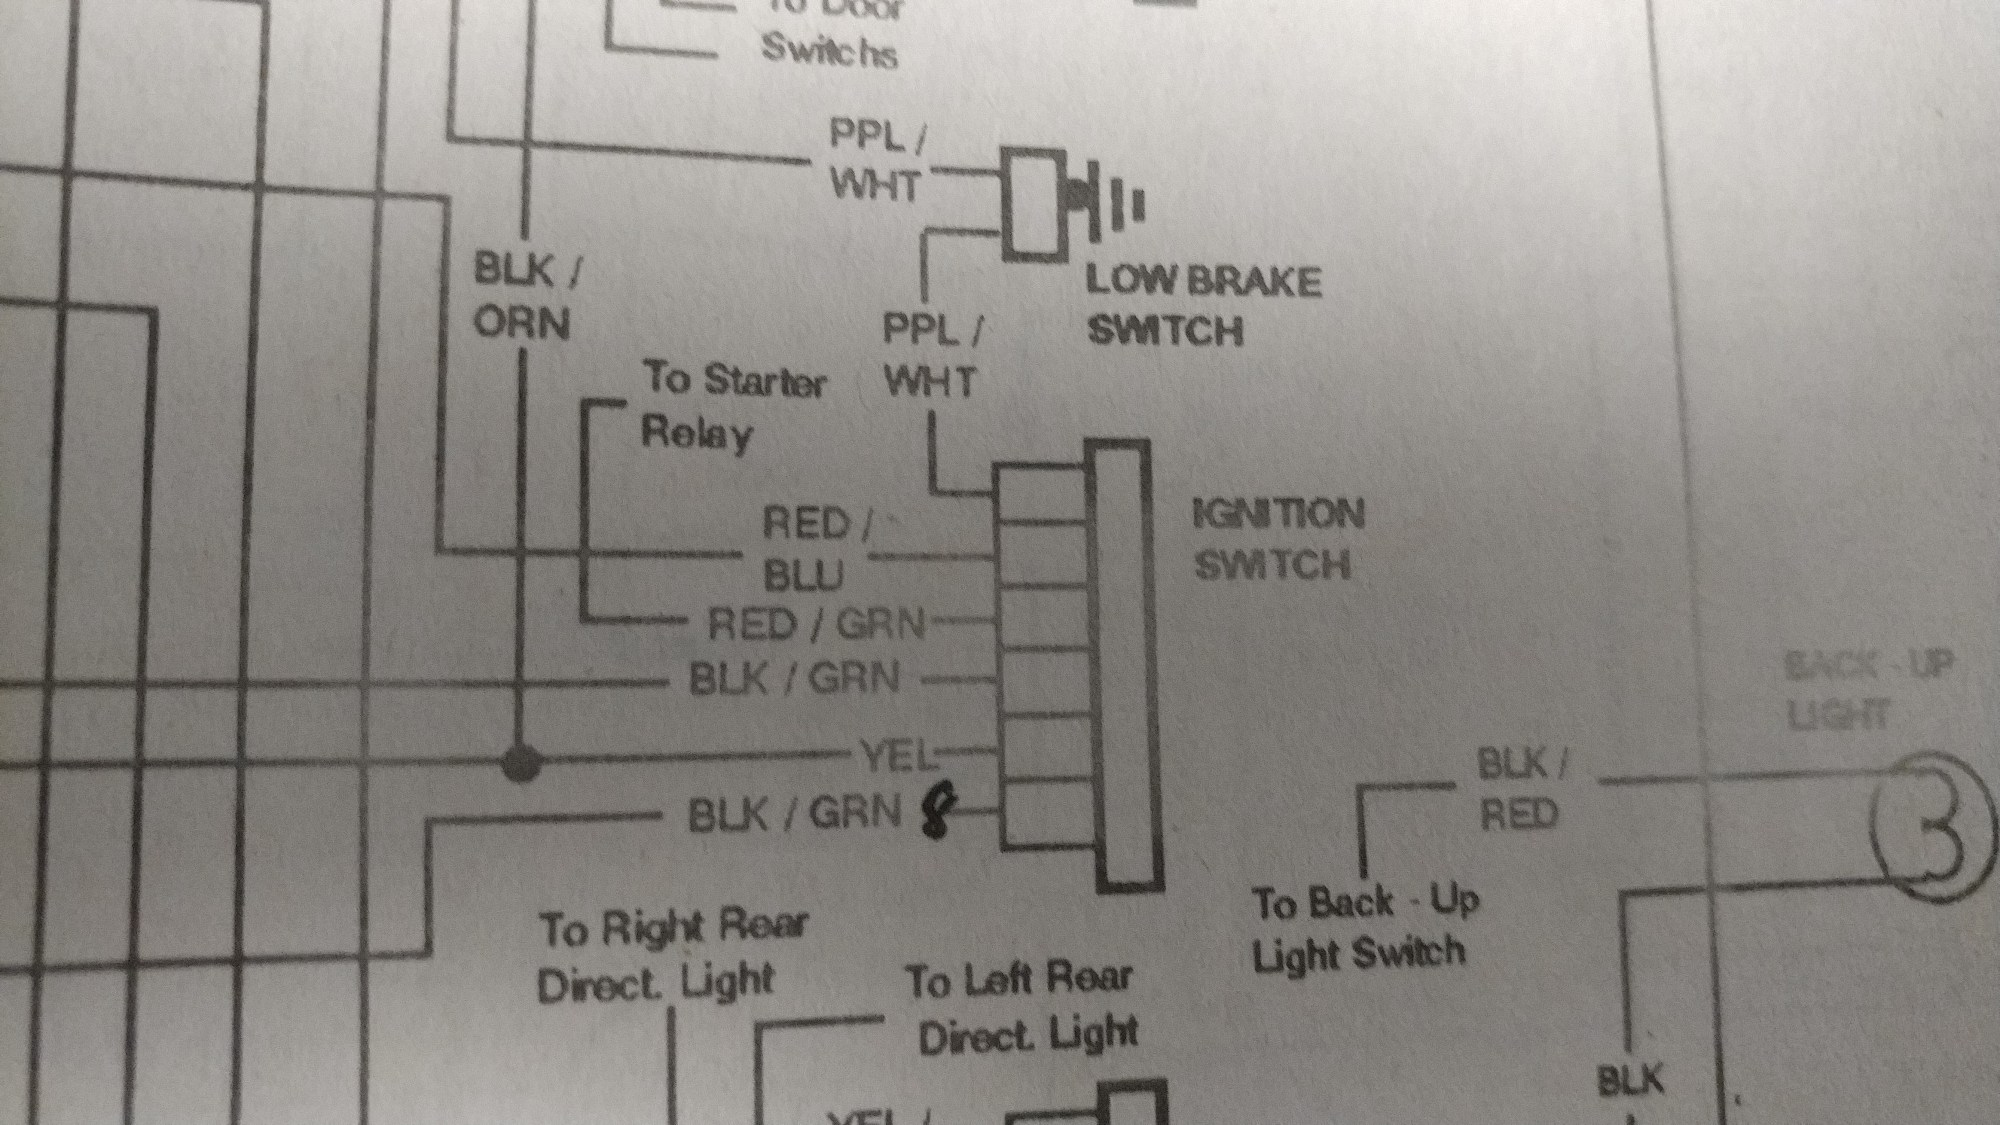 hight resolution of how to read wiring diagram correct one jpg